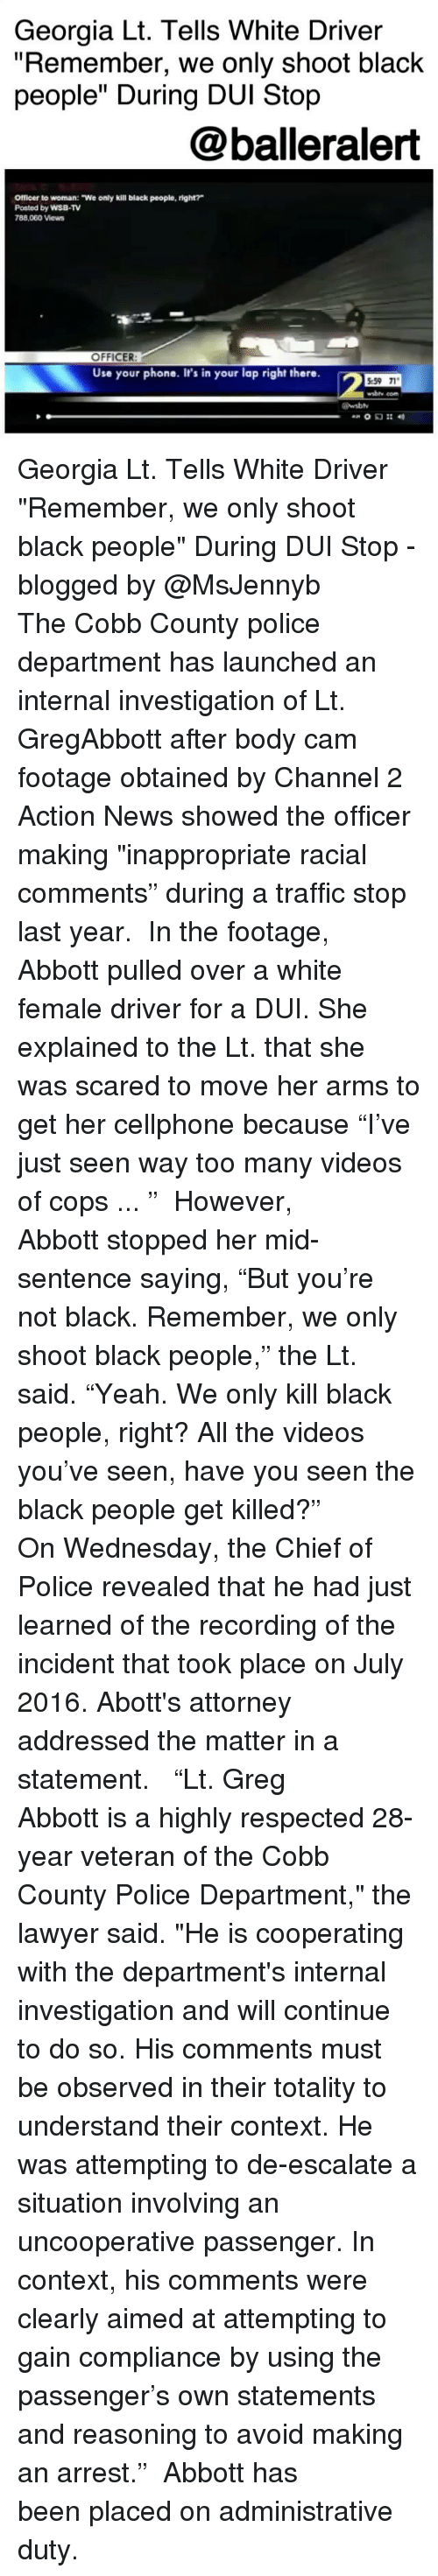 "laps: Georgia Lt. Tells White Driver  ""Remember, we only shoot black  people"" During DUI Stop  @balleralert  Officer to woman: ""We only kill black people, right?  Posted by WSB-TV  788,060 Views  OFFICER  Use your phone. It's in your lap right there.  2  5:59 71  wably cor  @waby Georgia Lt. Tells White Driver ""Remember, we only shoot black people"" During DUI Stop - blogged by @MsJennyb ⠀⠀⠀⠀⠀⠀⠀ The Cobb County police department has launched an internal investigation of Lt. GregAbbott after body cam footage obtained by Channel 2 Action News showed the officer making ""inappropriate racial comments"" during a traffic stop last year. ⠀⠀⠀⠀⠀⠀⠀ In the footage, Abbott pulled over a white female driver for a DUI. She explained to the Lt. that she was scared to move her arms to get her cellphone because ""I've just seen way too many videos of cops ... "" ⠀⠀⠀⠀⠀⠀⠀ However, Abbott stopped her mid-sentence saying, ""But you're not black. Remember, we only shoot black people,"" the Lt. said. ""Yeah. We only kill black people, right? All the videos you've seen, have you seen the black people get killed?"" ⠀⠀⠀⠀⠀⠀⠀ On Wednesday, the Chief of Police revealed that he had just learned of the recording of the incident that took place on July 2016. Abott's attorney addressed the matter in a statement. ⠀⠀⠀⠀⠀⠀⠀ ⠀⠀⠀⠀⠀⠀⠀ ""Lt. Greg Abbott is a highly respected 28-year veteran of the Cobb County Police Department,"" the lawyer said. ""He is cooperating with the department's internal investigation and will continue to do so. His comments must be observed in their totality to understand their context. He was attempting to de-escalate a situation involving an uncooperative passenger. In context, his comments were clearly aimed at attempting to gain compliance by using the passenger's own statements and reasoning to avoid making an arrest."" ⠀⠀⠀⠀⠀⠀⠀ Abbott has been placed on administrative duty."